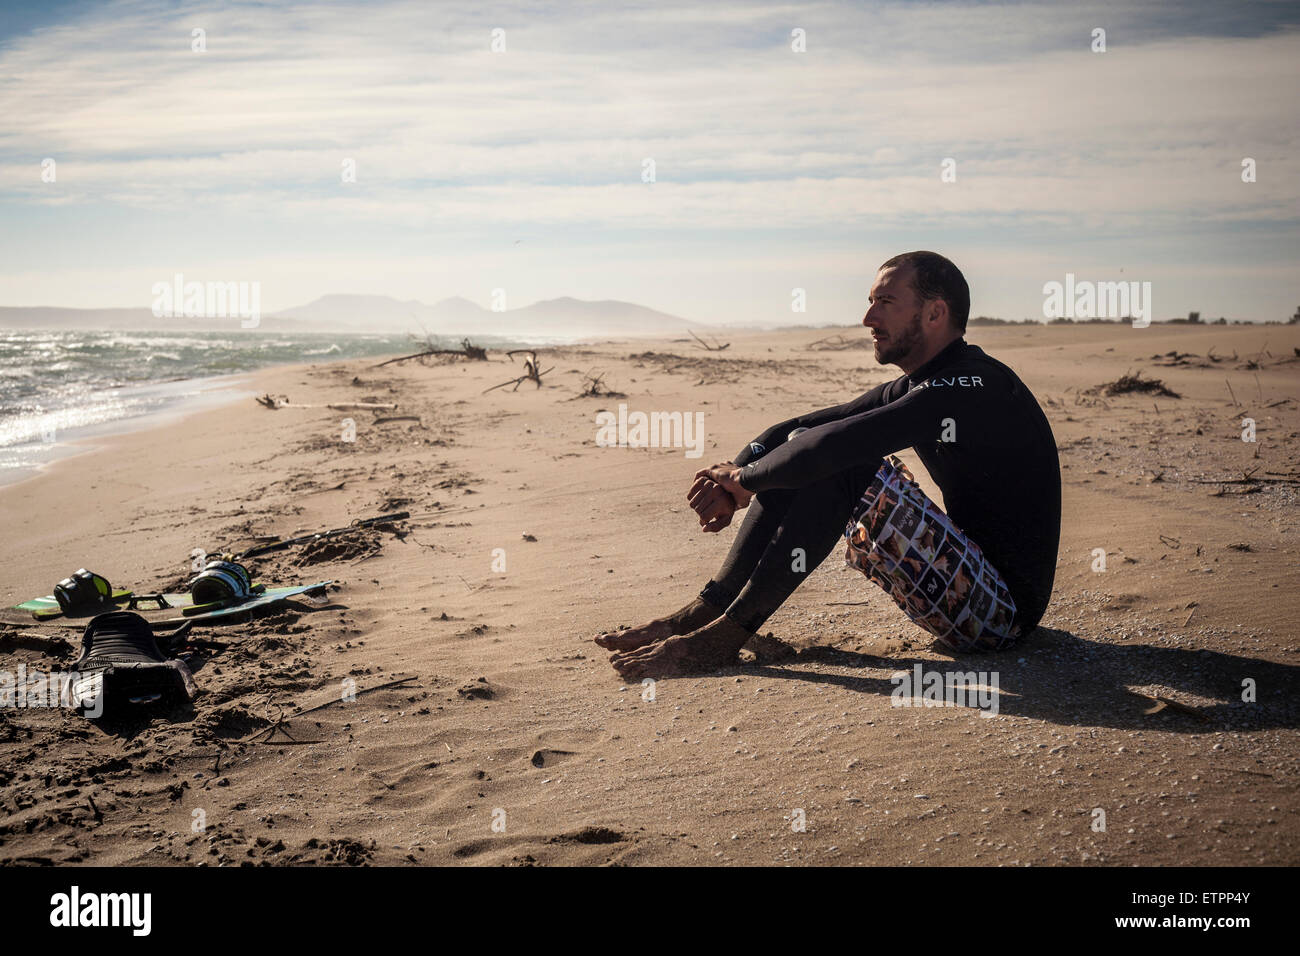 Kite surfer in Wet suit sitting on beach, thoughtful, wistful, beach, costa Brava, girona - Stock Image